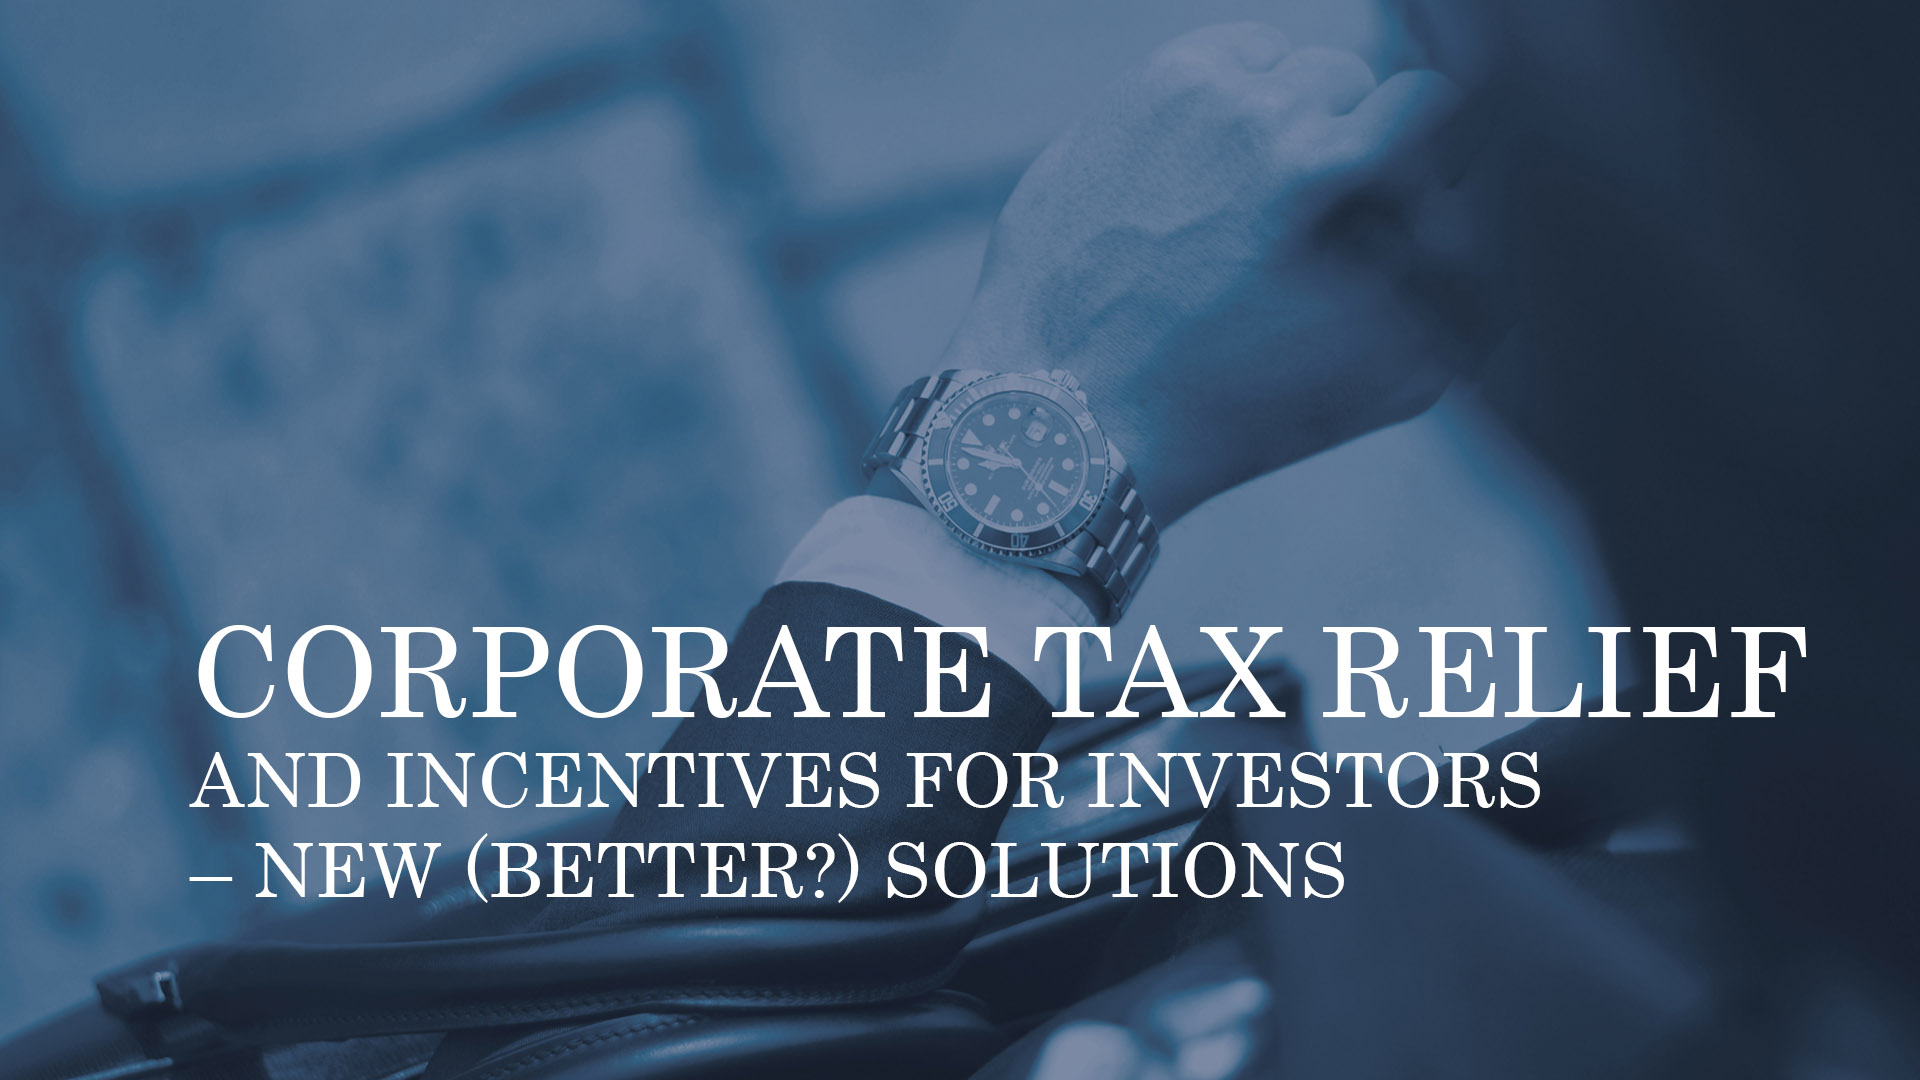 CORPORATE TAX RELIEF AND INCENTIVES FOR INVESTORS – NEW (BETTER?) SOLUTIONS